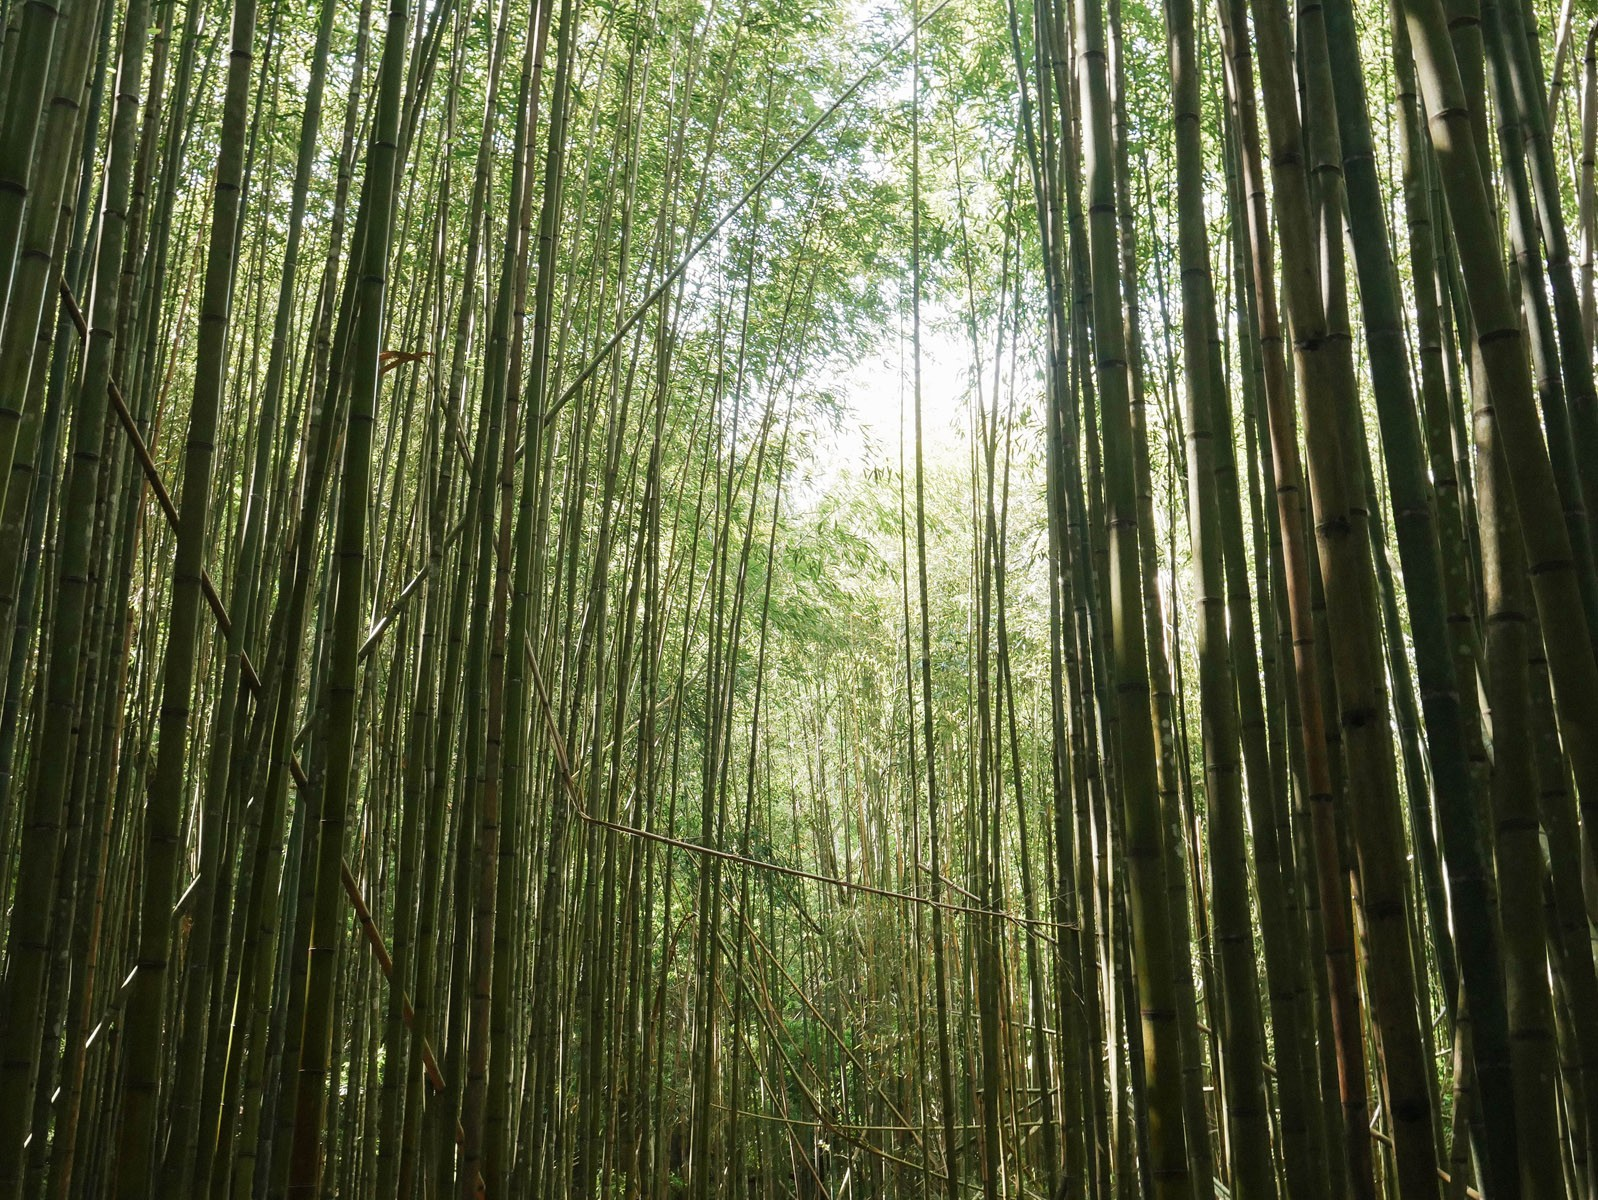 bamboo-forest_26899466786_o